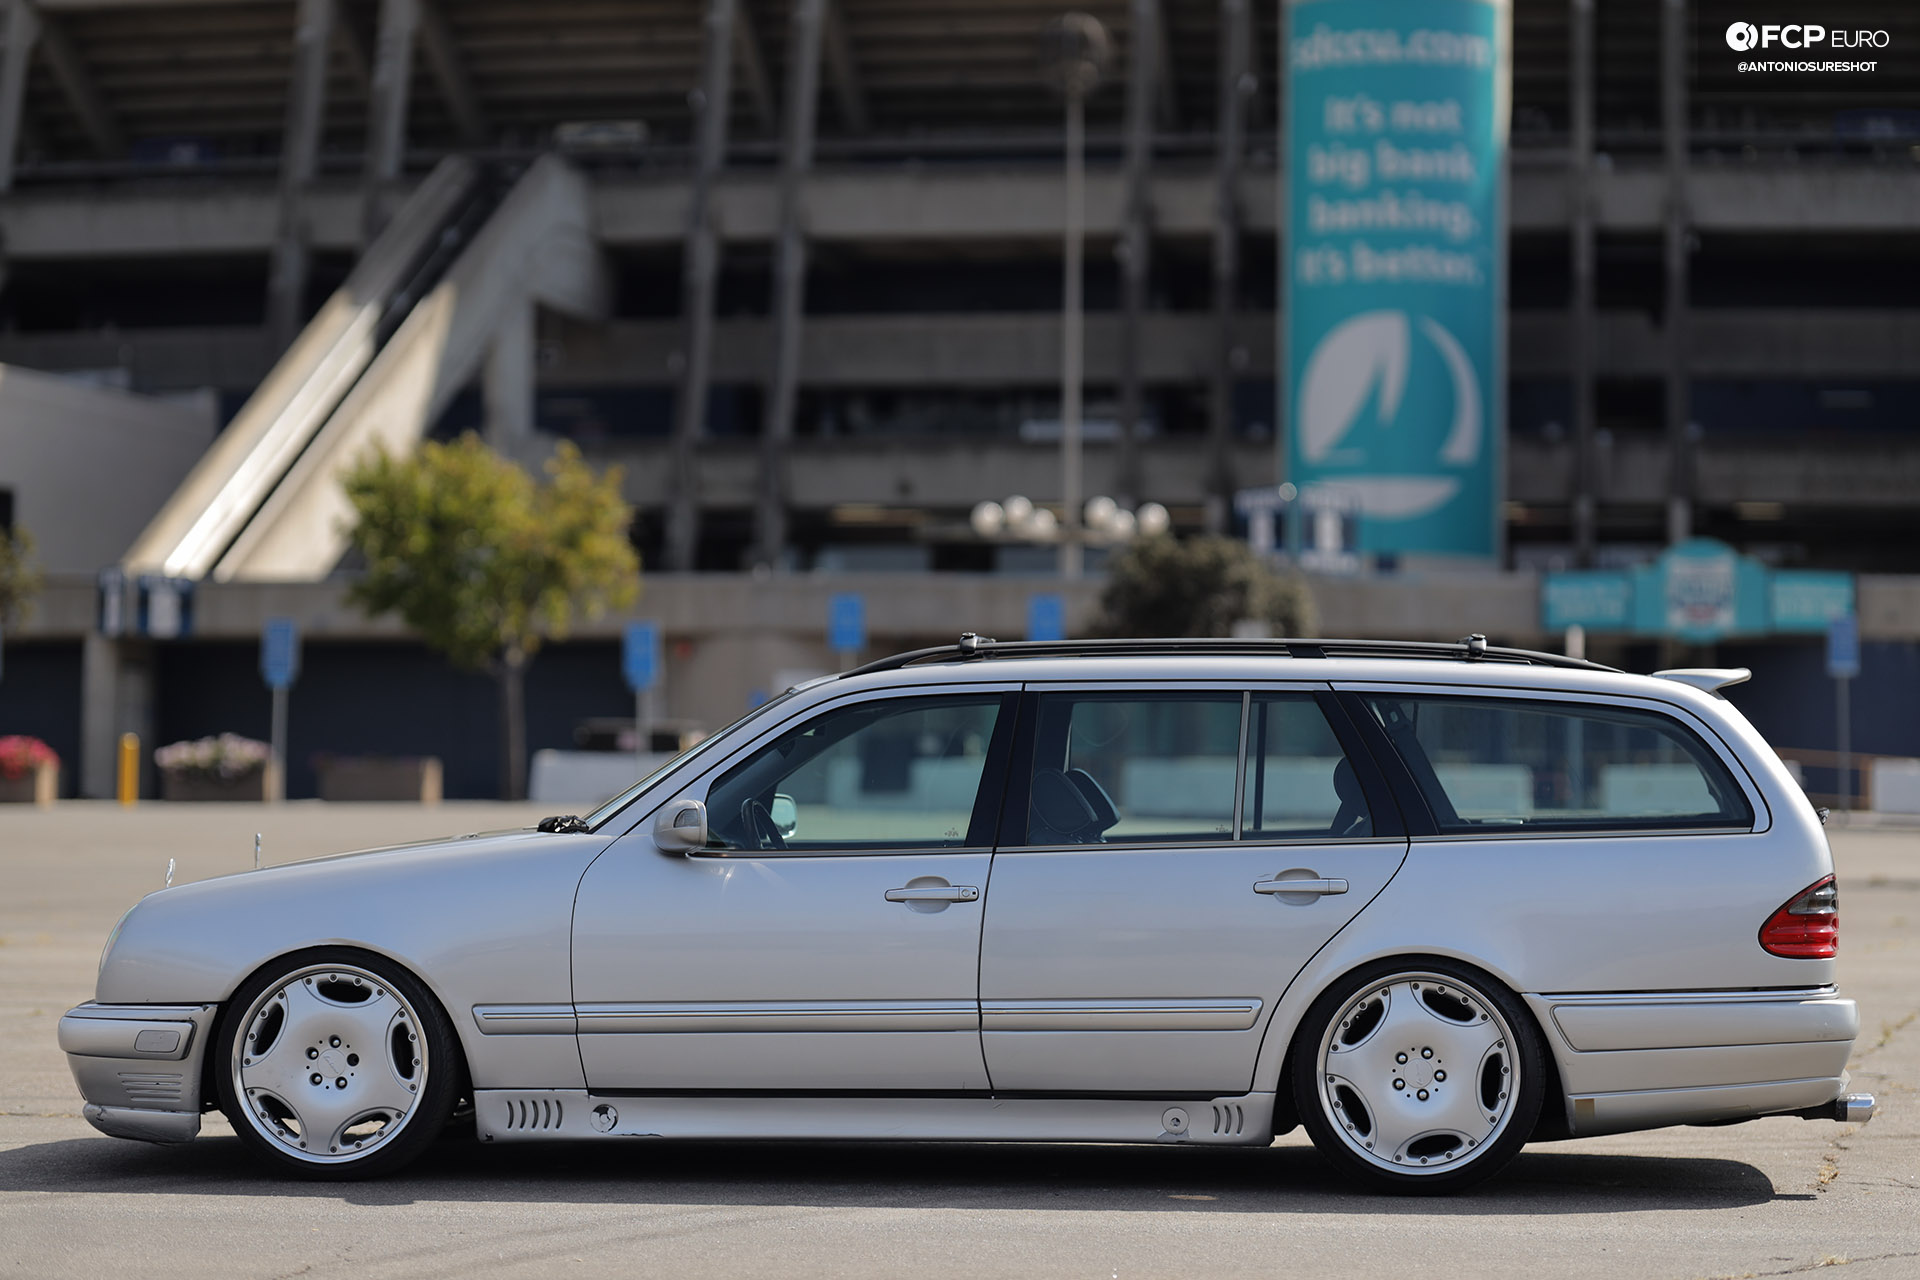 Mercedes Benz AMG E55 swapped E320 wagon 1920wm EOSR2600